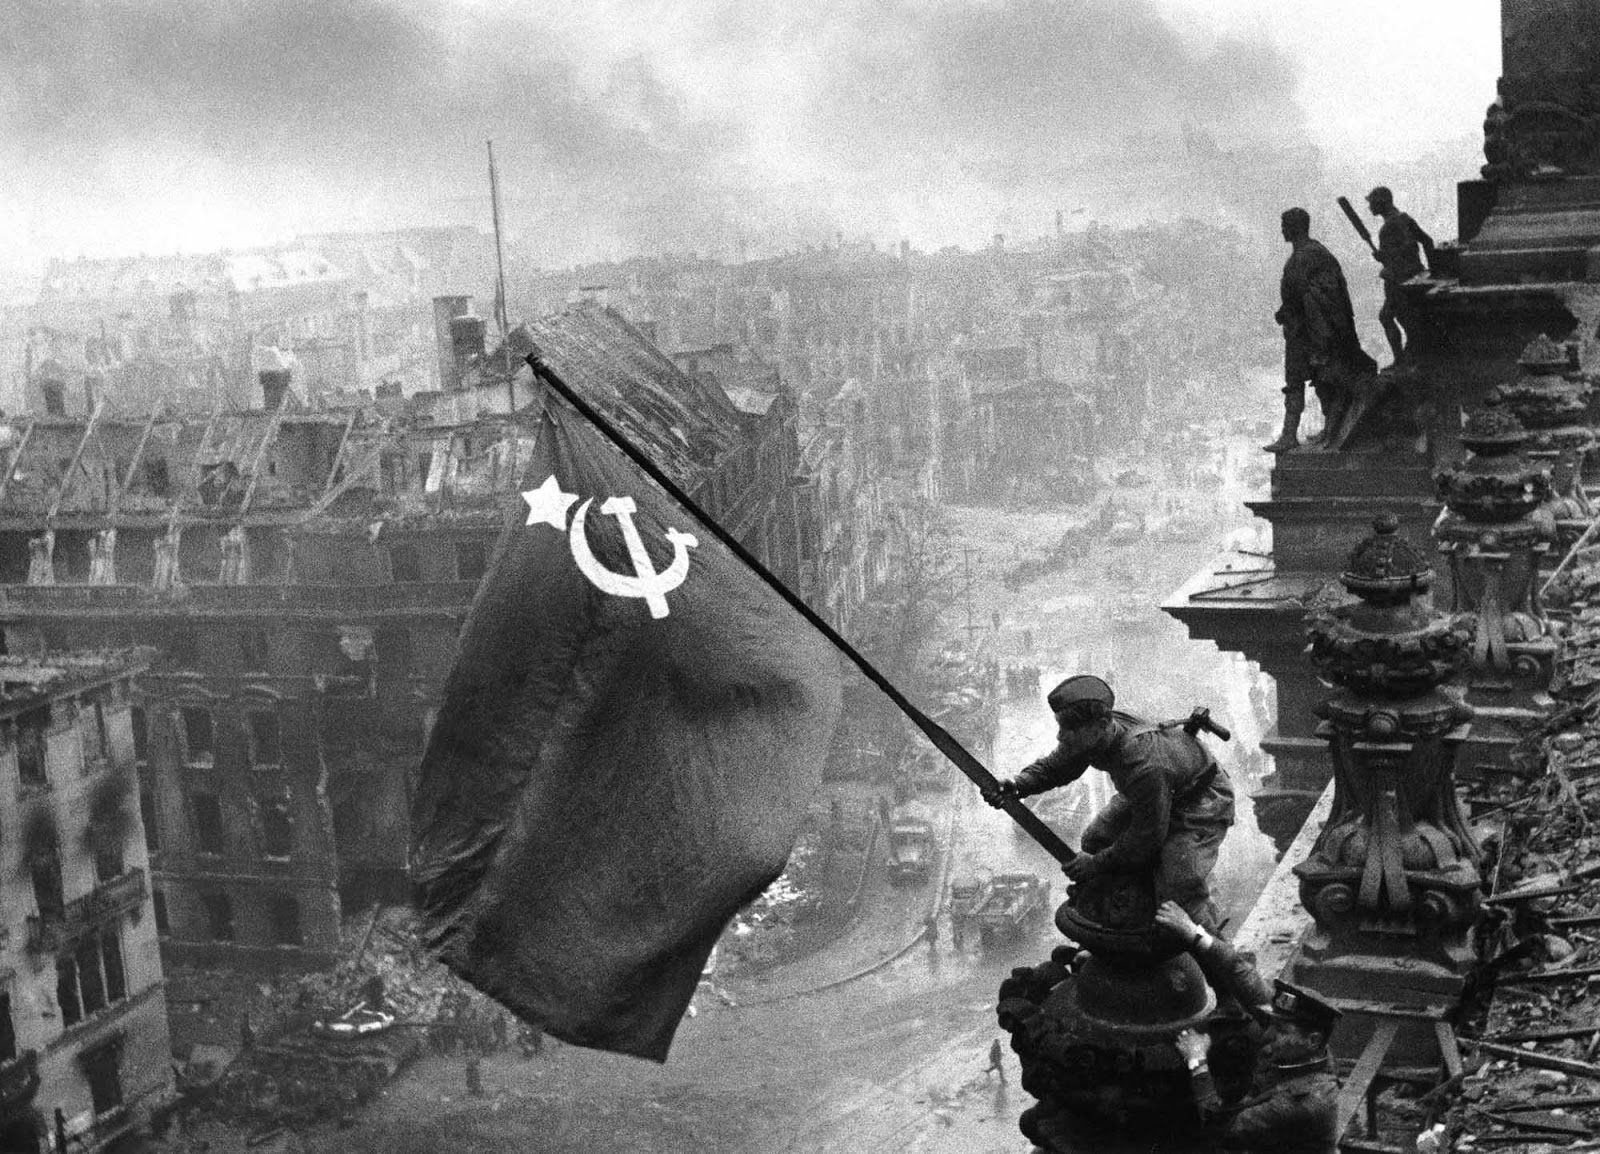 The famed raising of the Hammer and Sickle over the fallen  Reichstag  was, like the one with the Marines raising flag over Iwo Jima, staged for the paps after the tumult of battle had ceased.